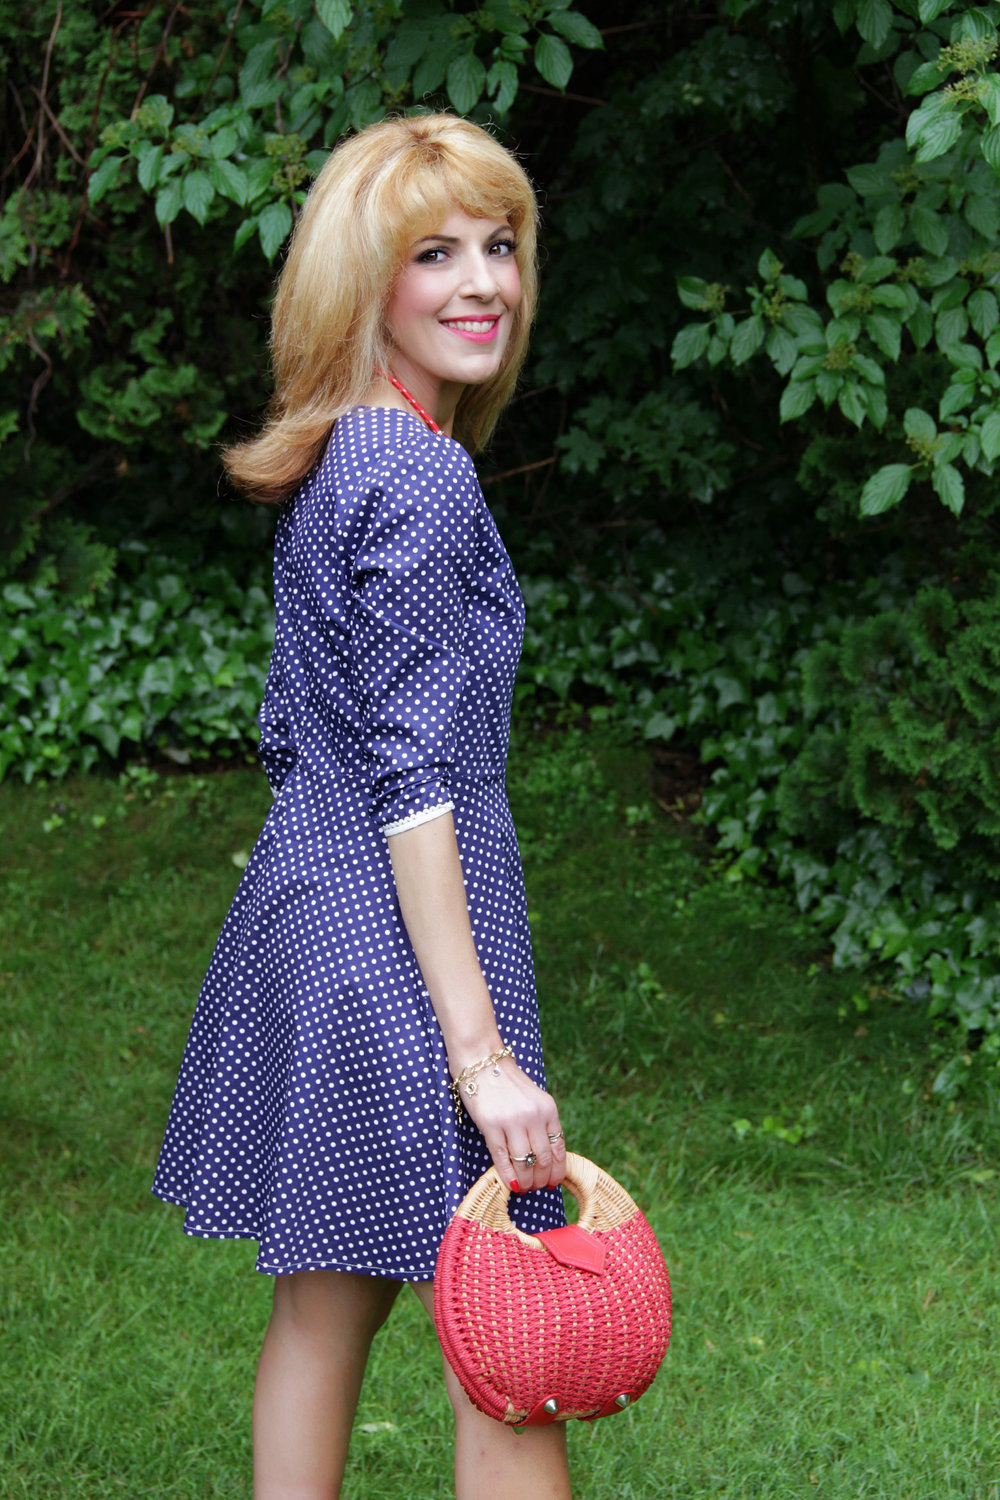 Find this crisp, adorable polka dot  dress   here . It is available in other colors, fits true to size and I've washed it and worn it a few times without any need to press. The fabric is a cotton microfiber with delicate lace detail and it is only 8.99!